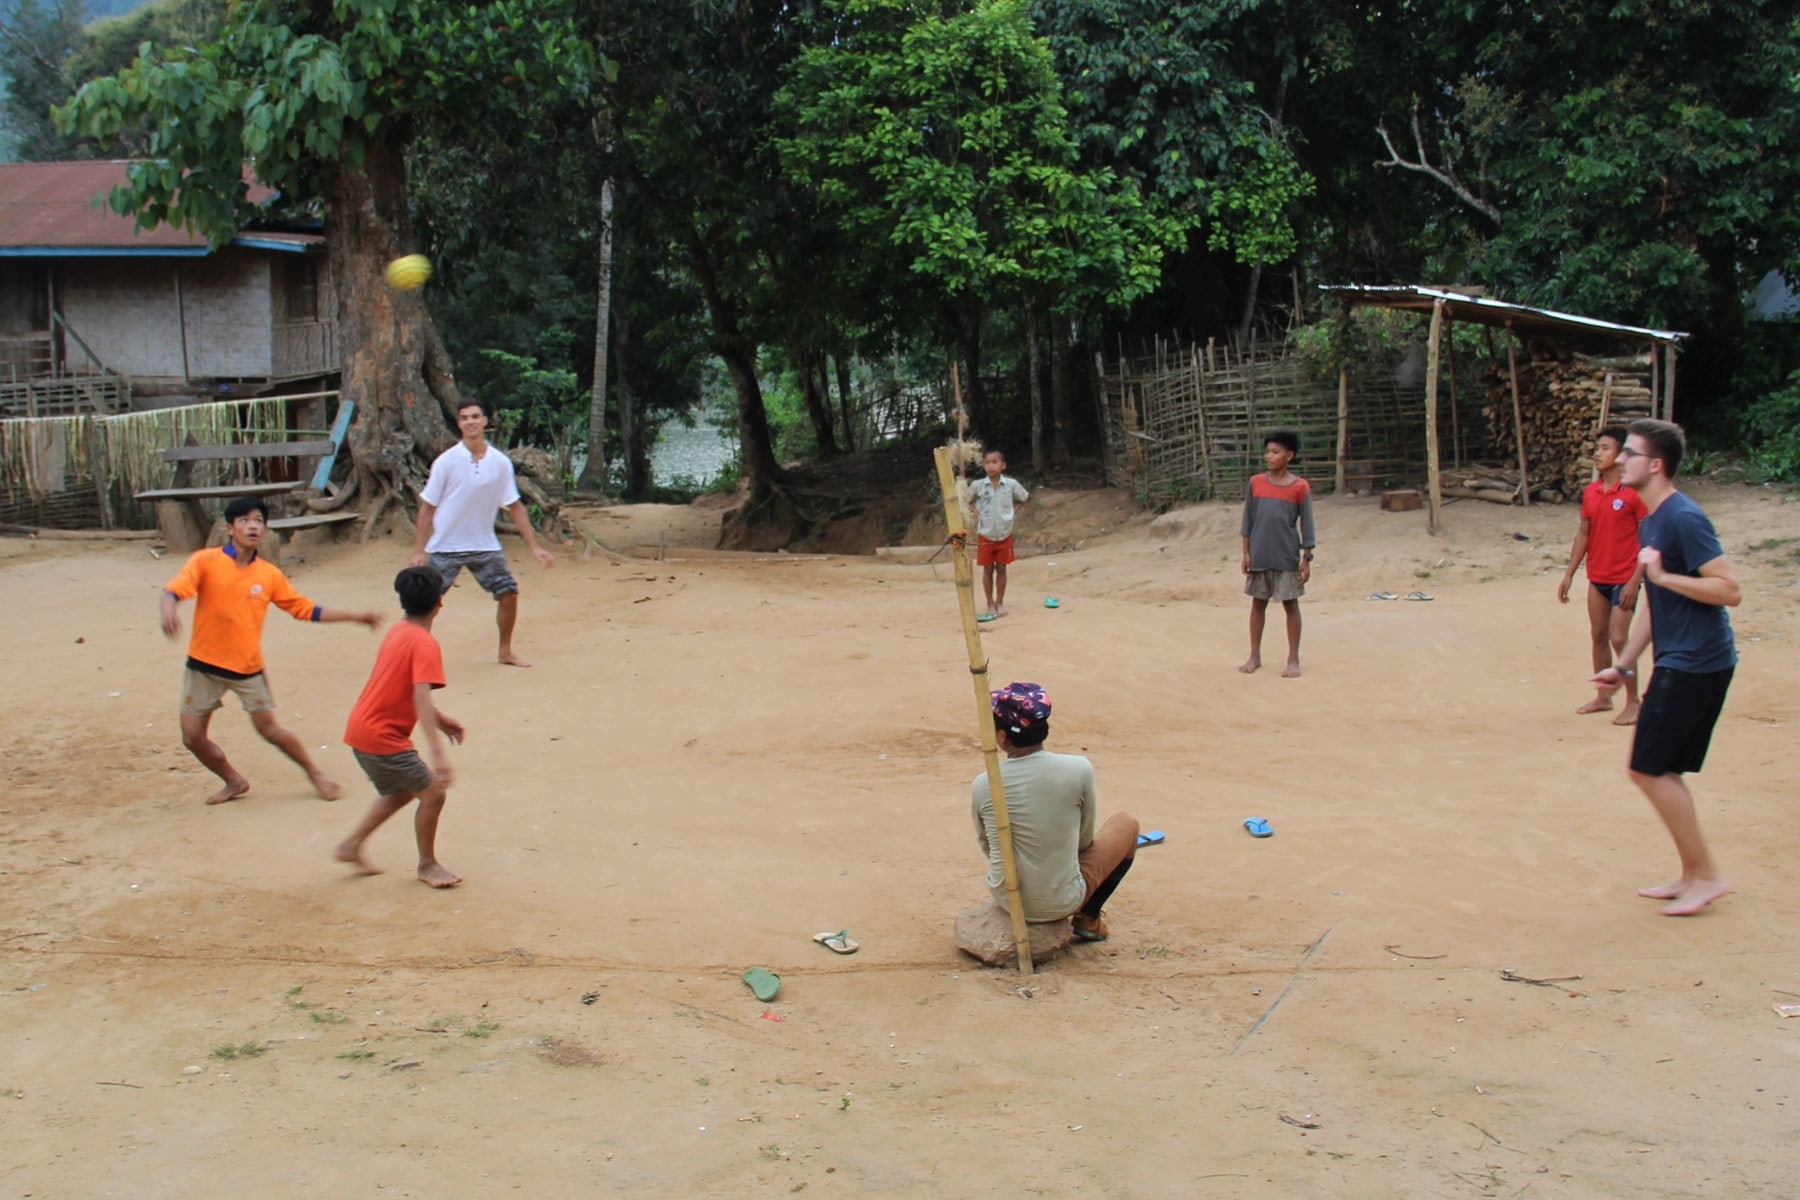 Kids playing ball with homestay guests